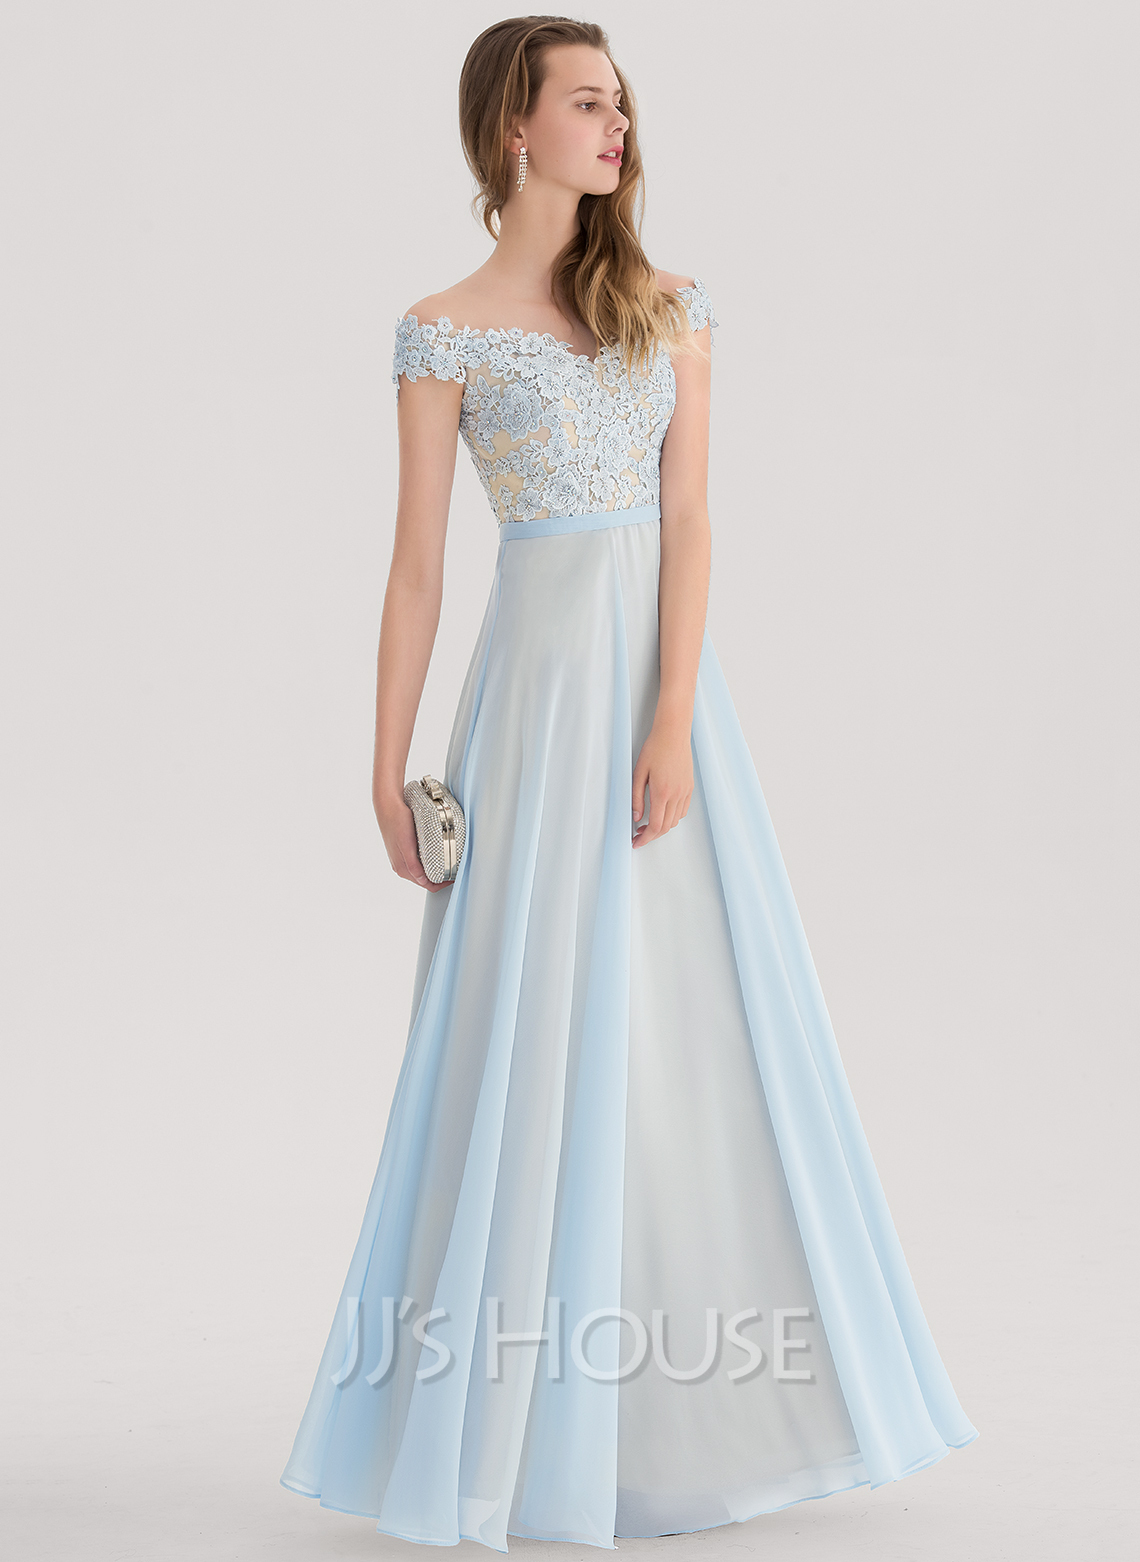 d7ccd07750d1f A-Line/Princess Off-the-Shoulder Floor-Length Chiffon Prom Dresses. Loading  zoom